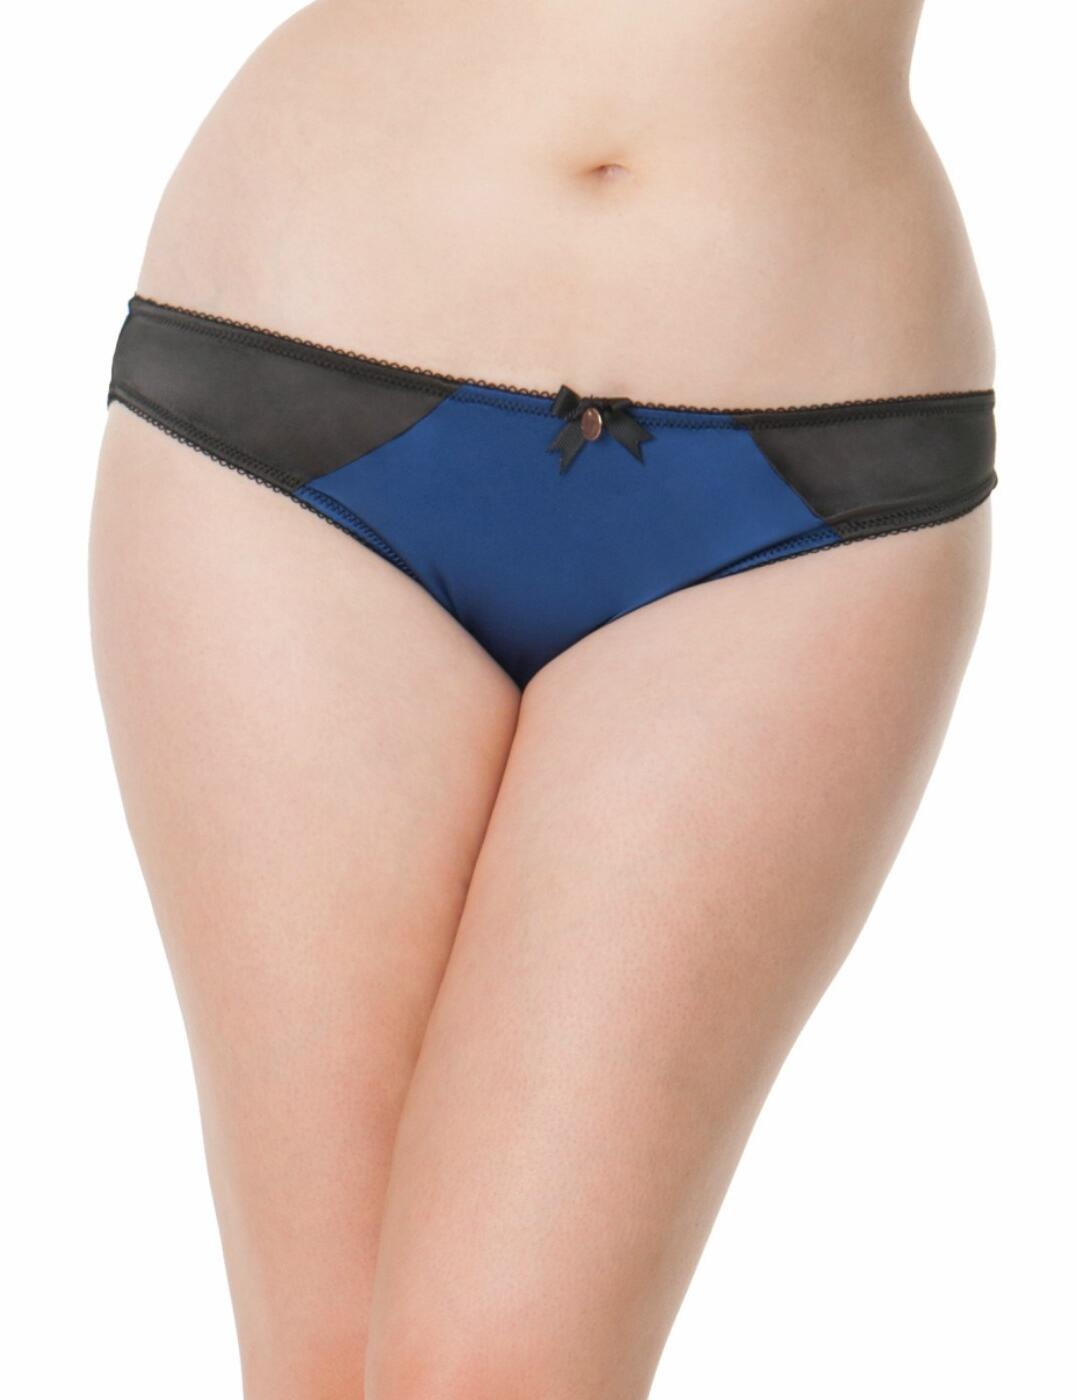 ST2505 Scantilly by Curvy Kate Invitation Brief - ST2505 Blueberry/Black